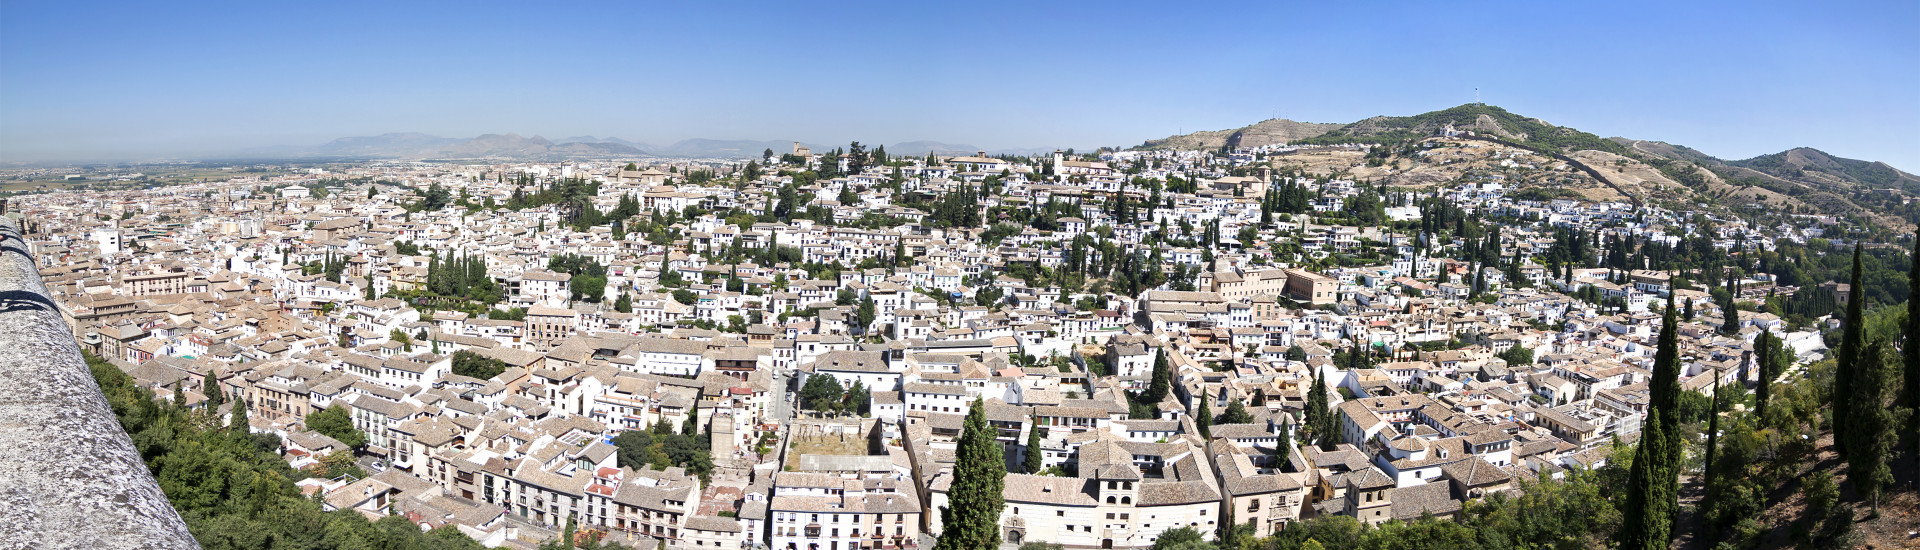 What do you have to take into account when visiting Granada